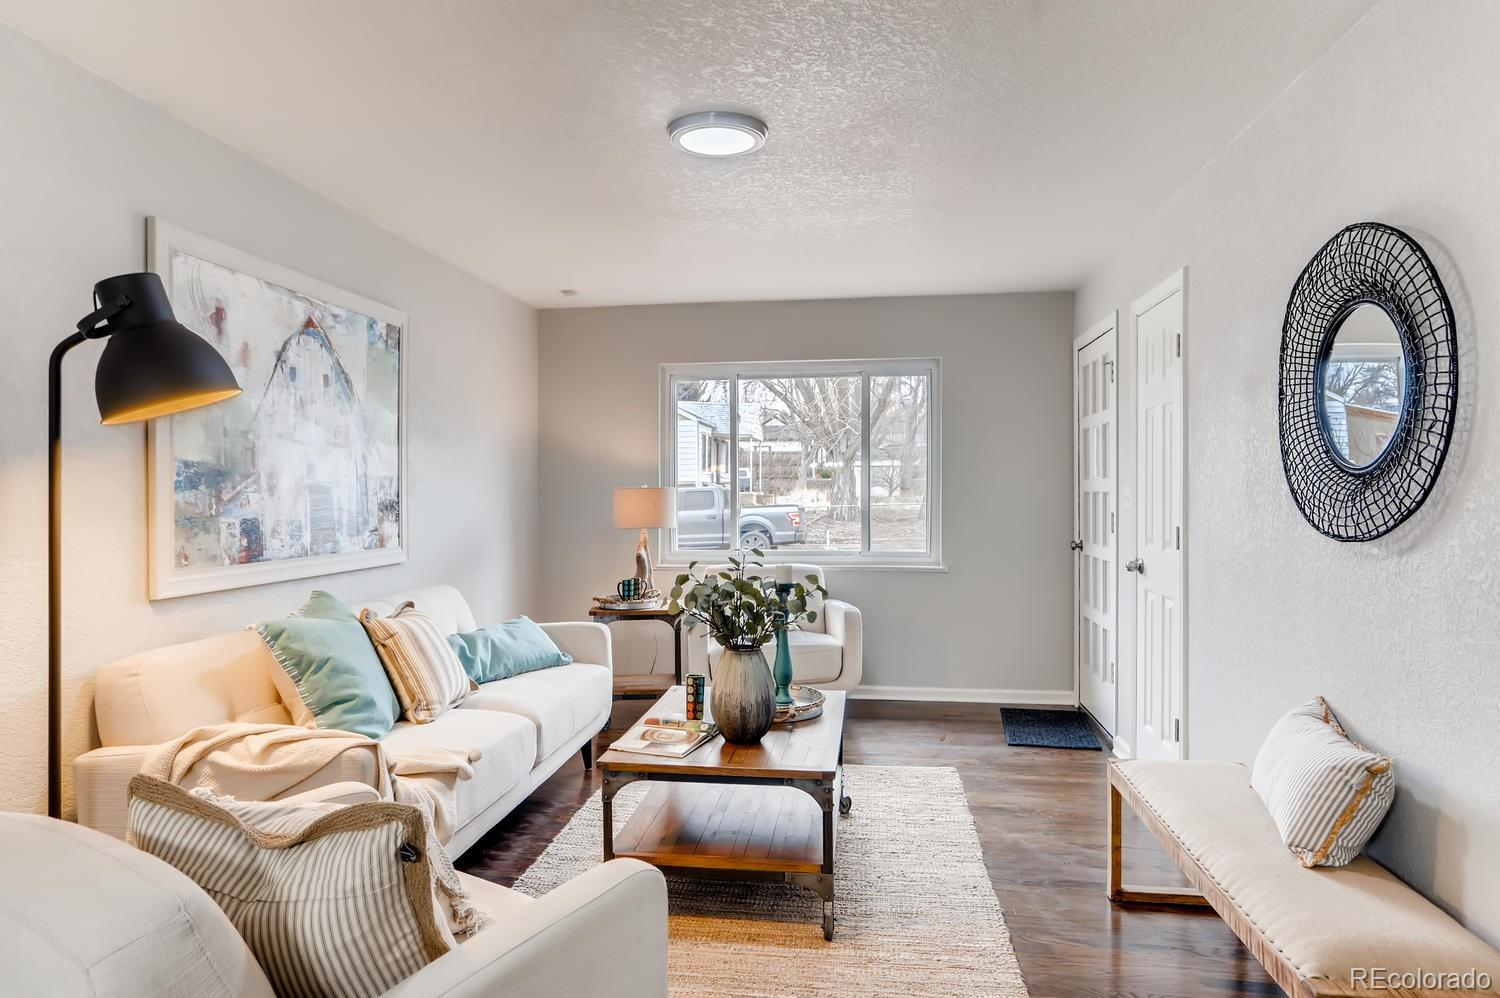 MLS# 2830054 - 6 - 8408 W 62nd Place, Arvada, CO 80004